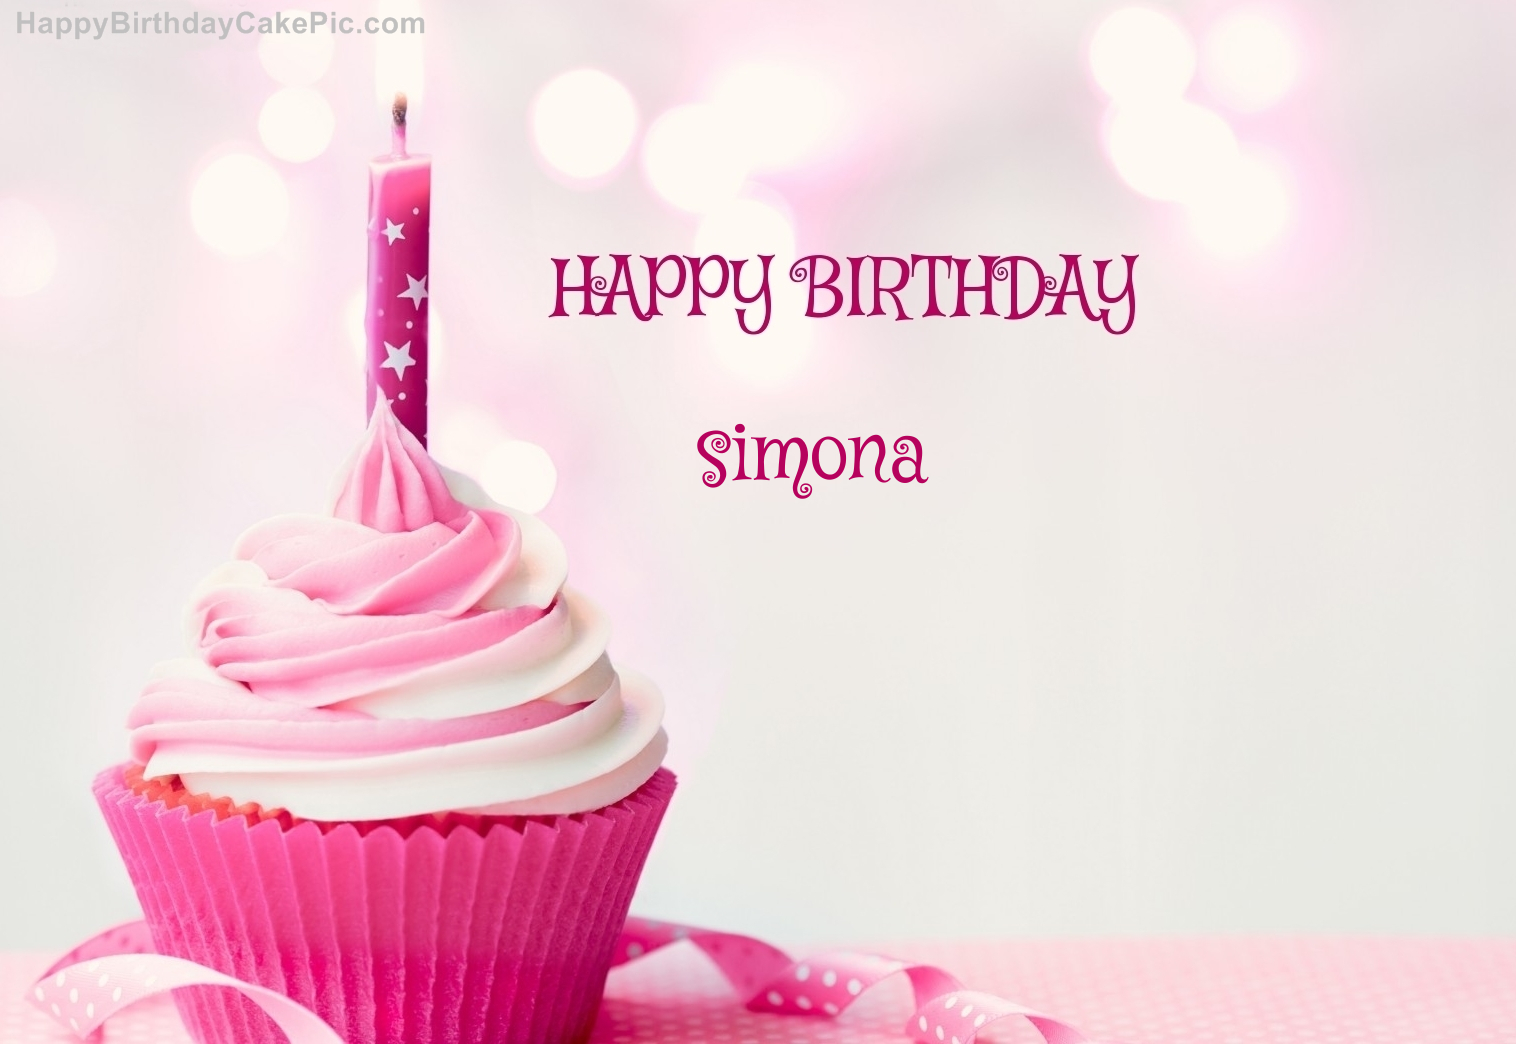 Happy Birthday Cupcake Candle Pink Cake For simona